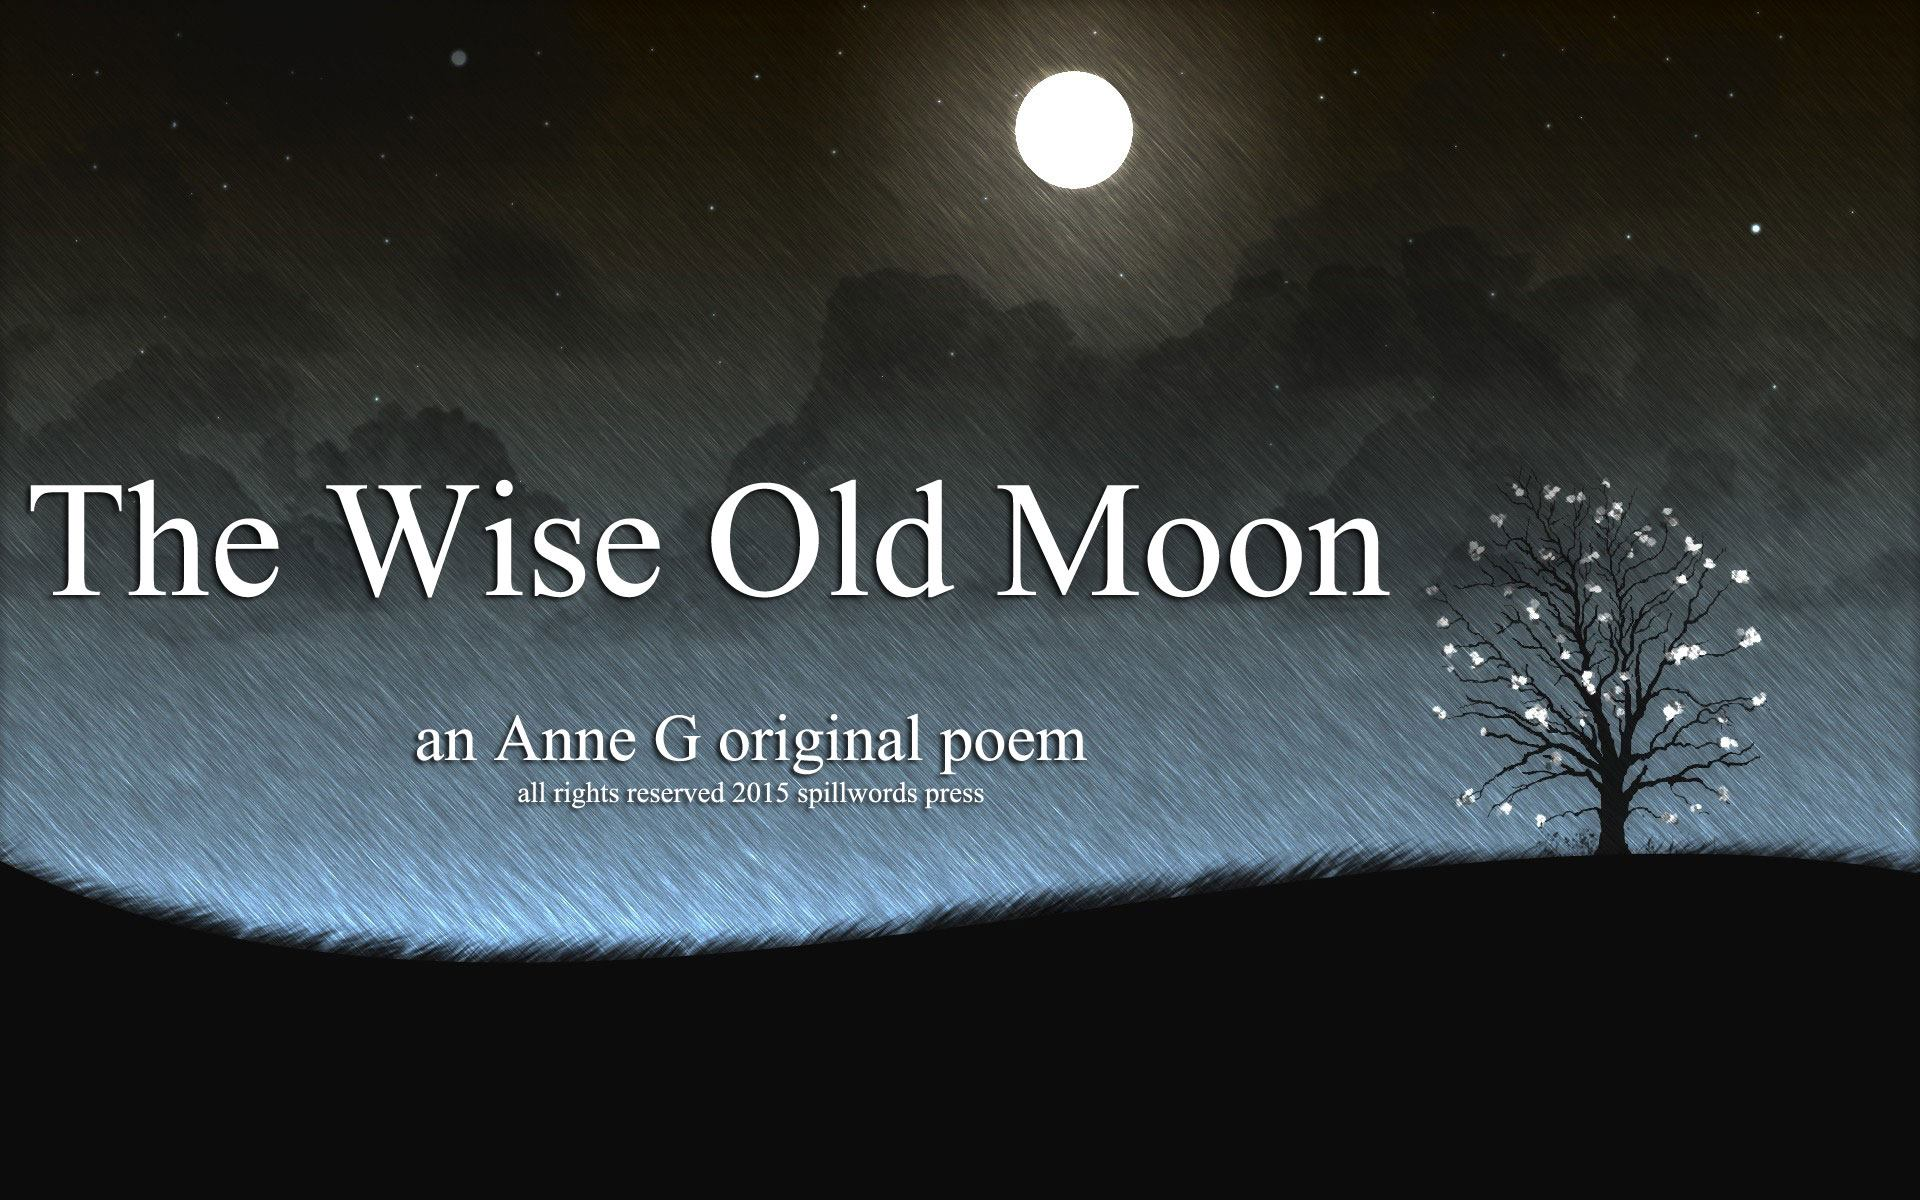 spillwords.com The Wise old moon by Anne G